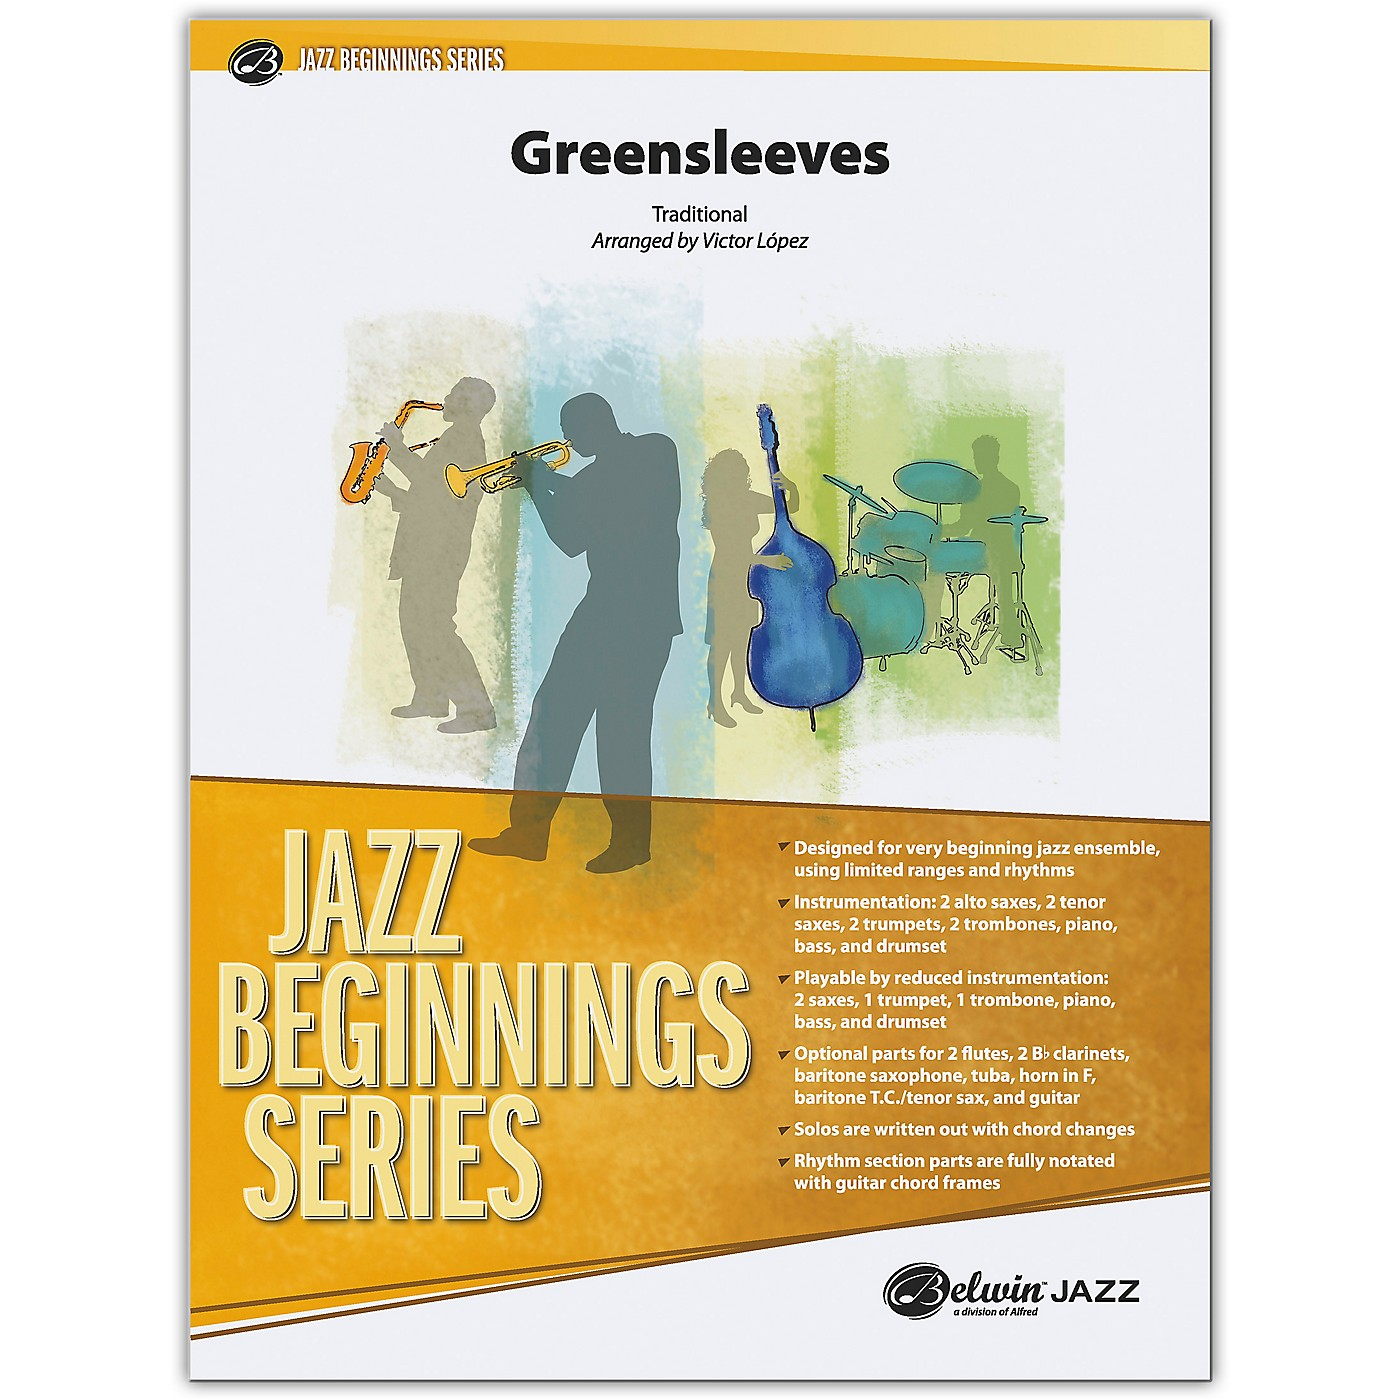 BELWIN Greensleeves Conductor Score 0.5 (Very Easy) thumbnail